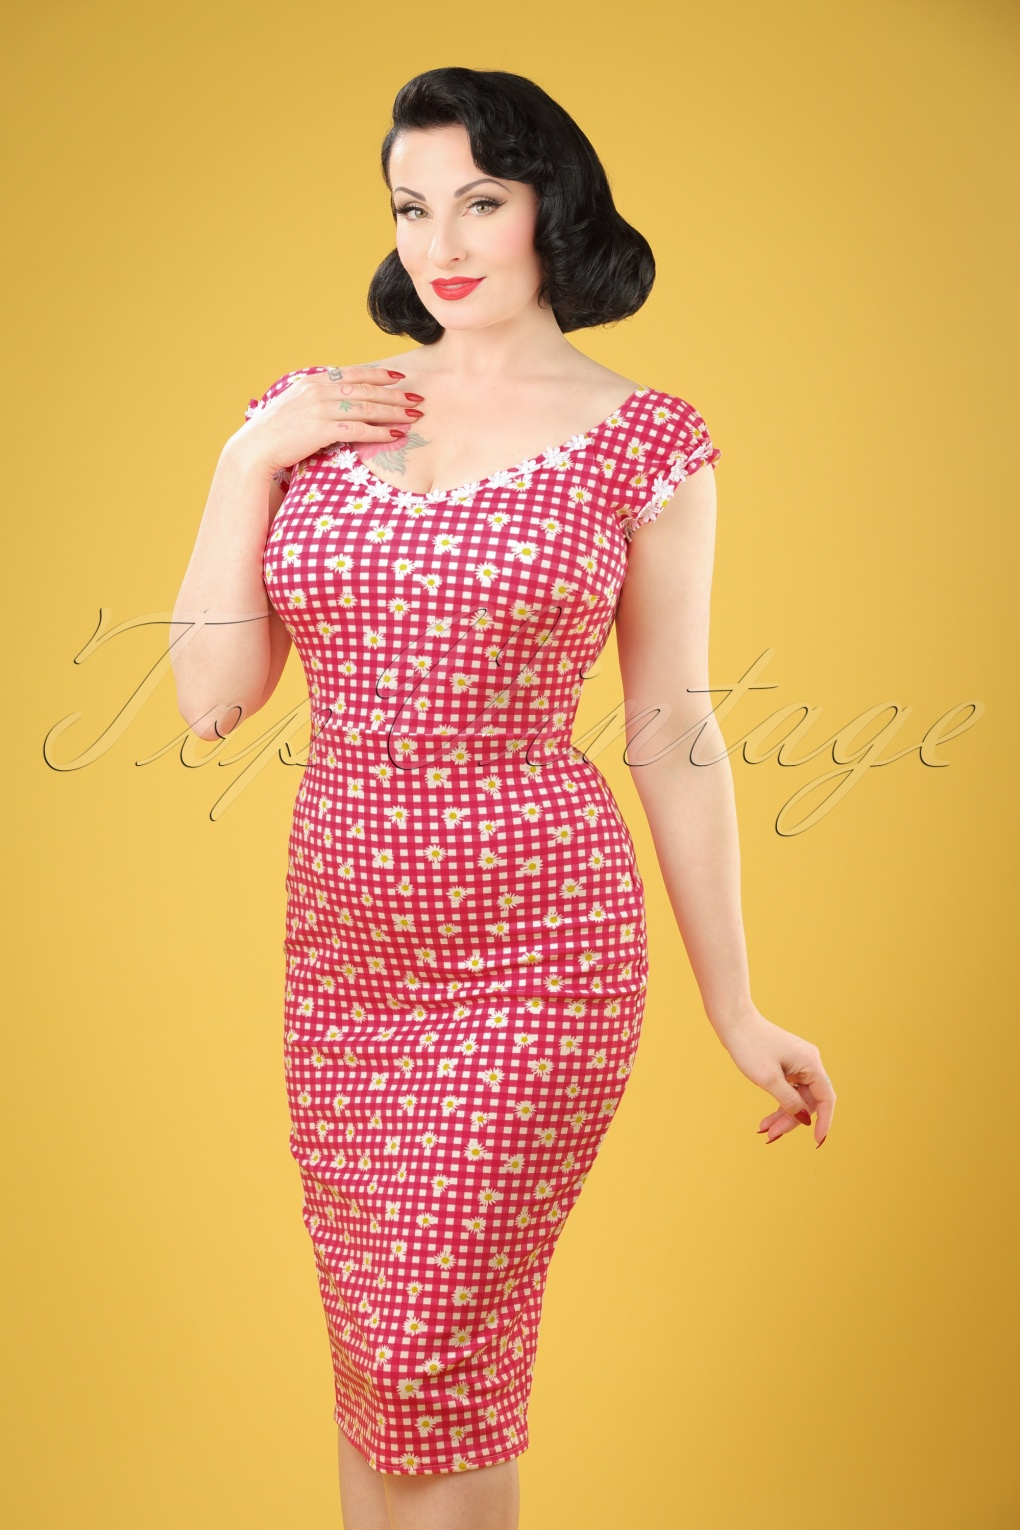 Wiggle Dresses | Pencil Dresses 50s Rachel Checked Pencil Dress in Red and White £32.20 AT vintagedancer.com